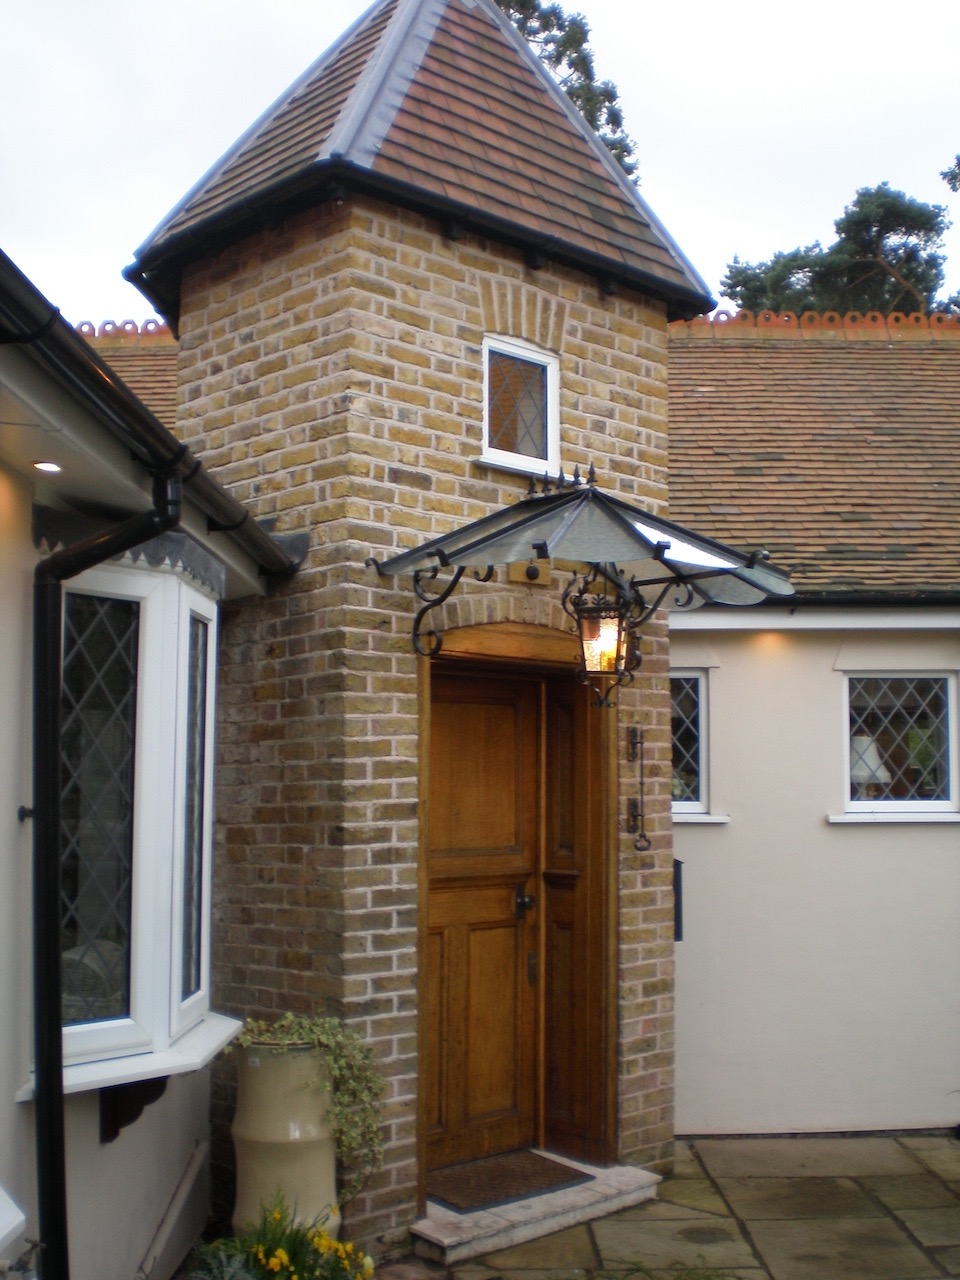 Traditional curved French style Scalloped Glass and metal Door cover Canopy with cast iron finial to the roof ridge and custom scroll spandrel brackets